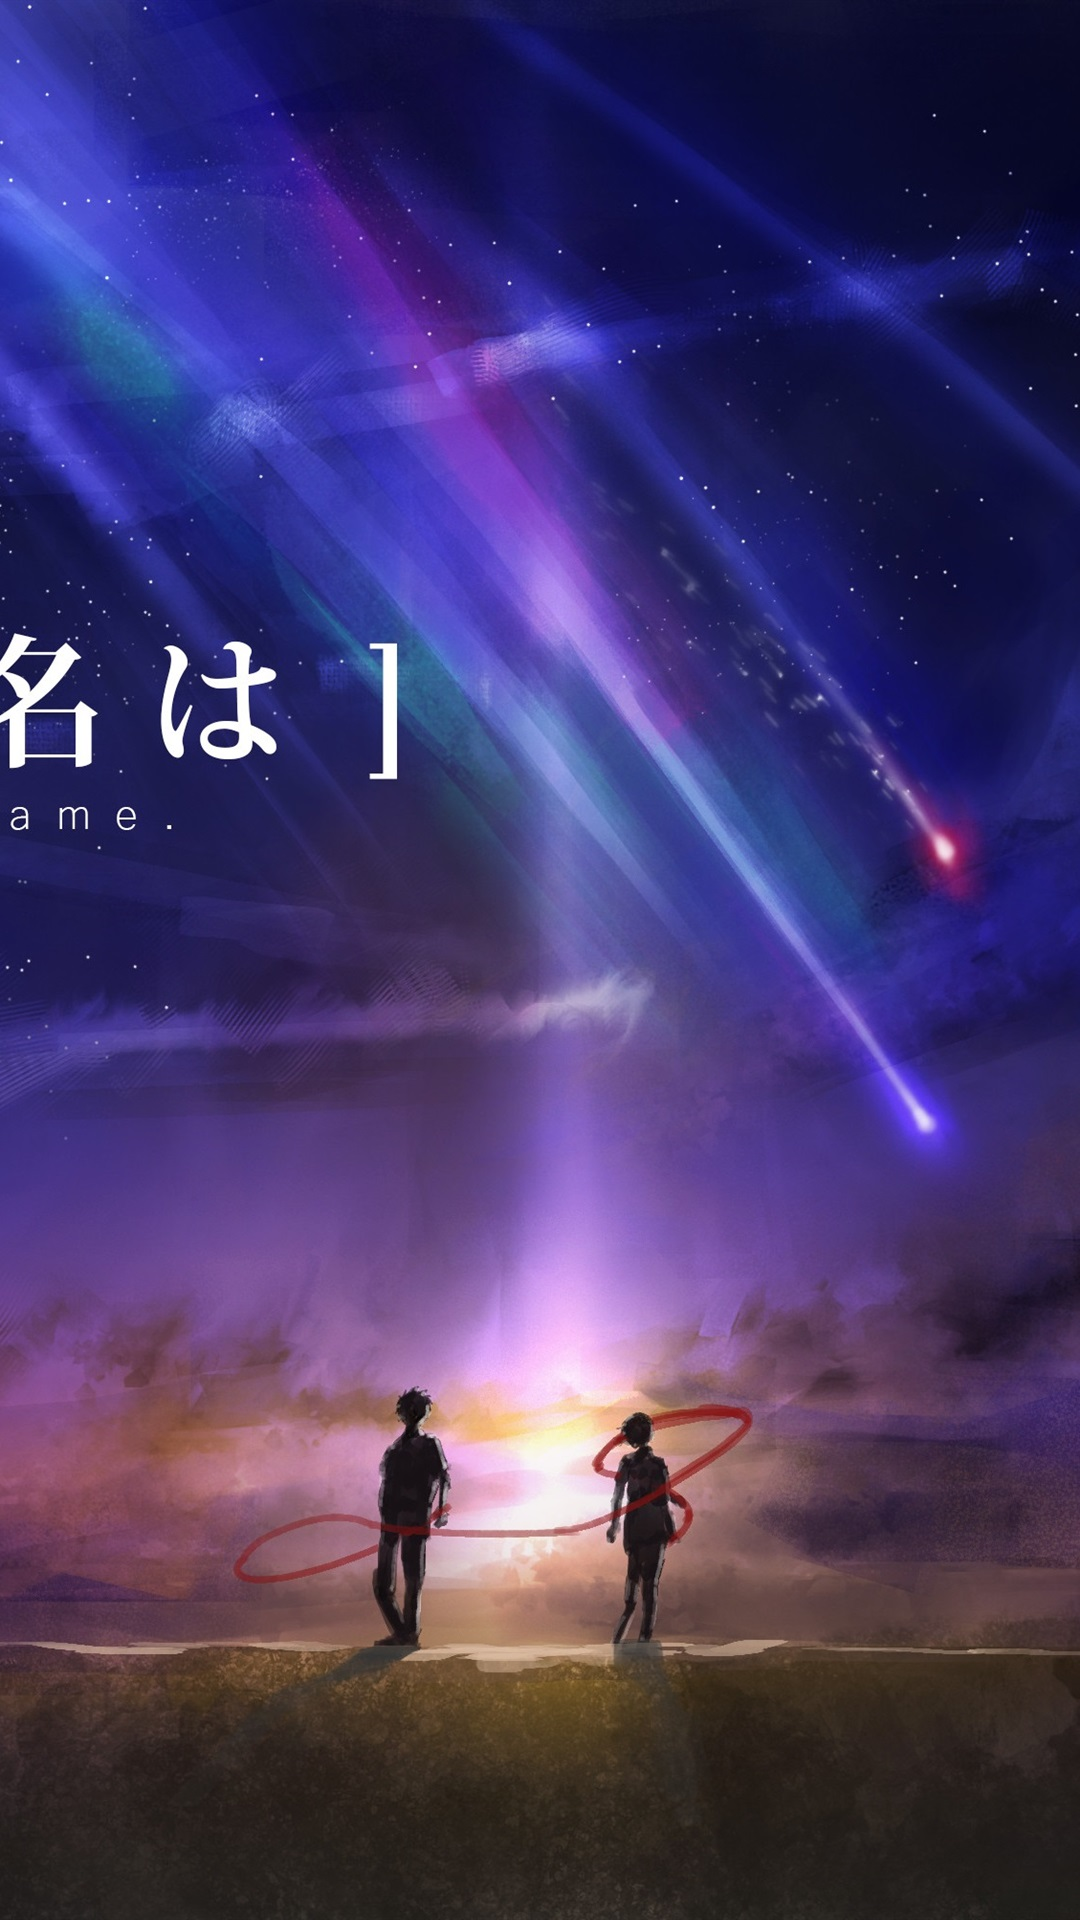 Your name anime movie beautiful night meteor 1080x1920 - A and s name wallpaper ...